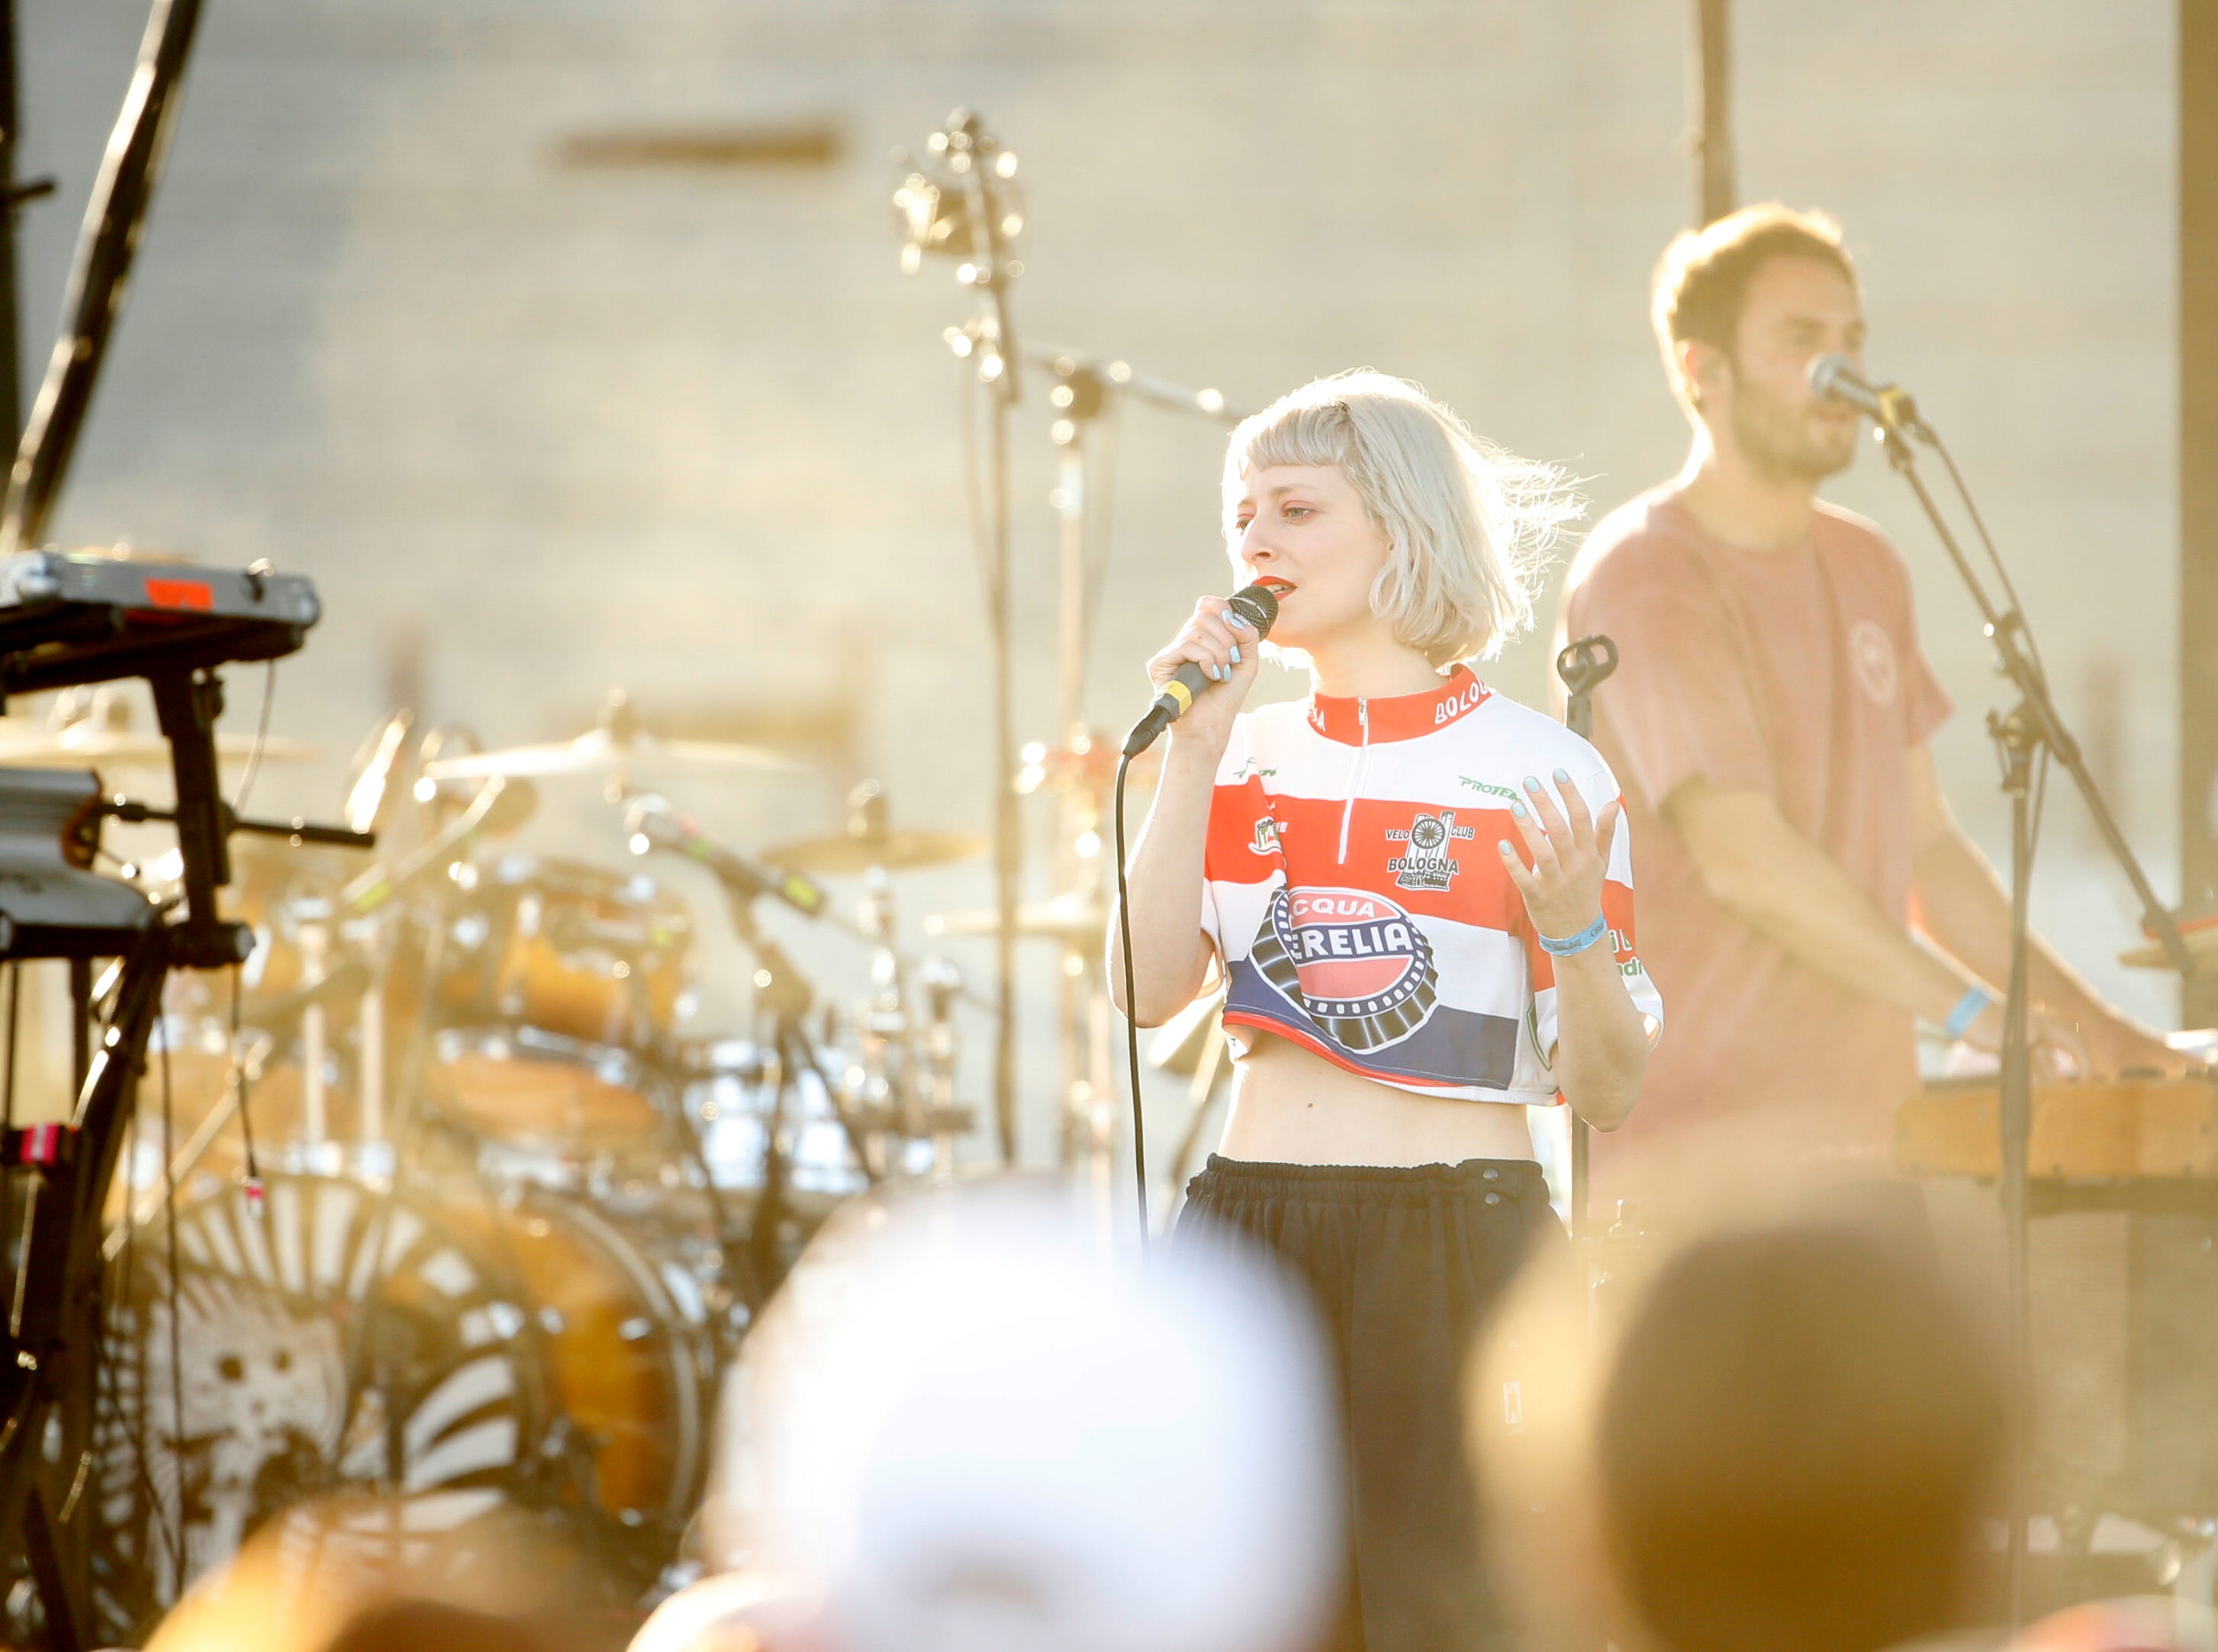 Maribou State perform during McDowell Mountain Music Festival in Phoenix on March 3, 2019.